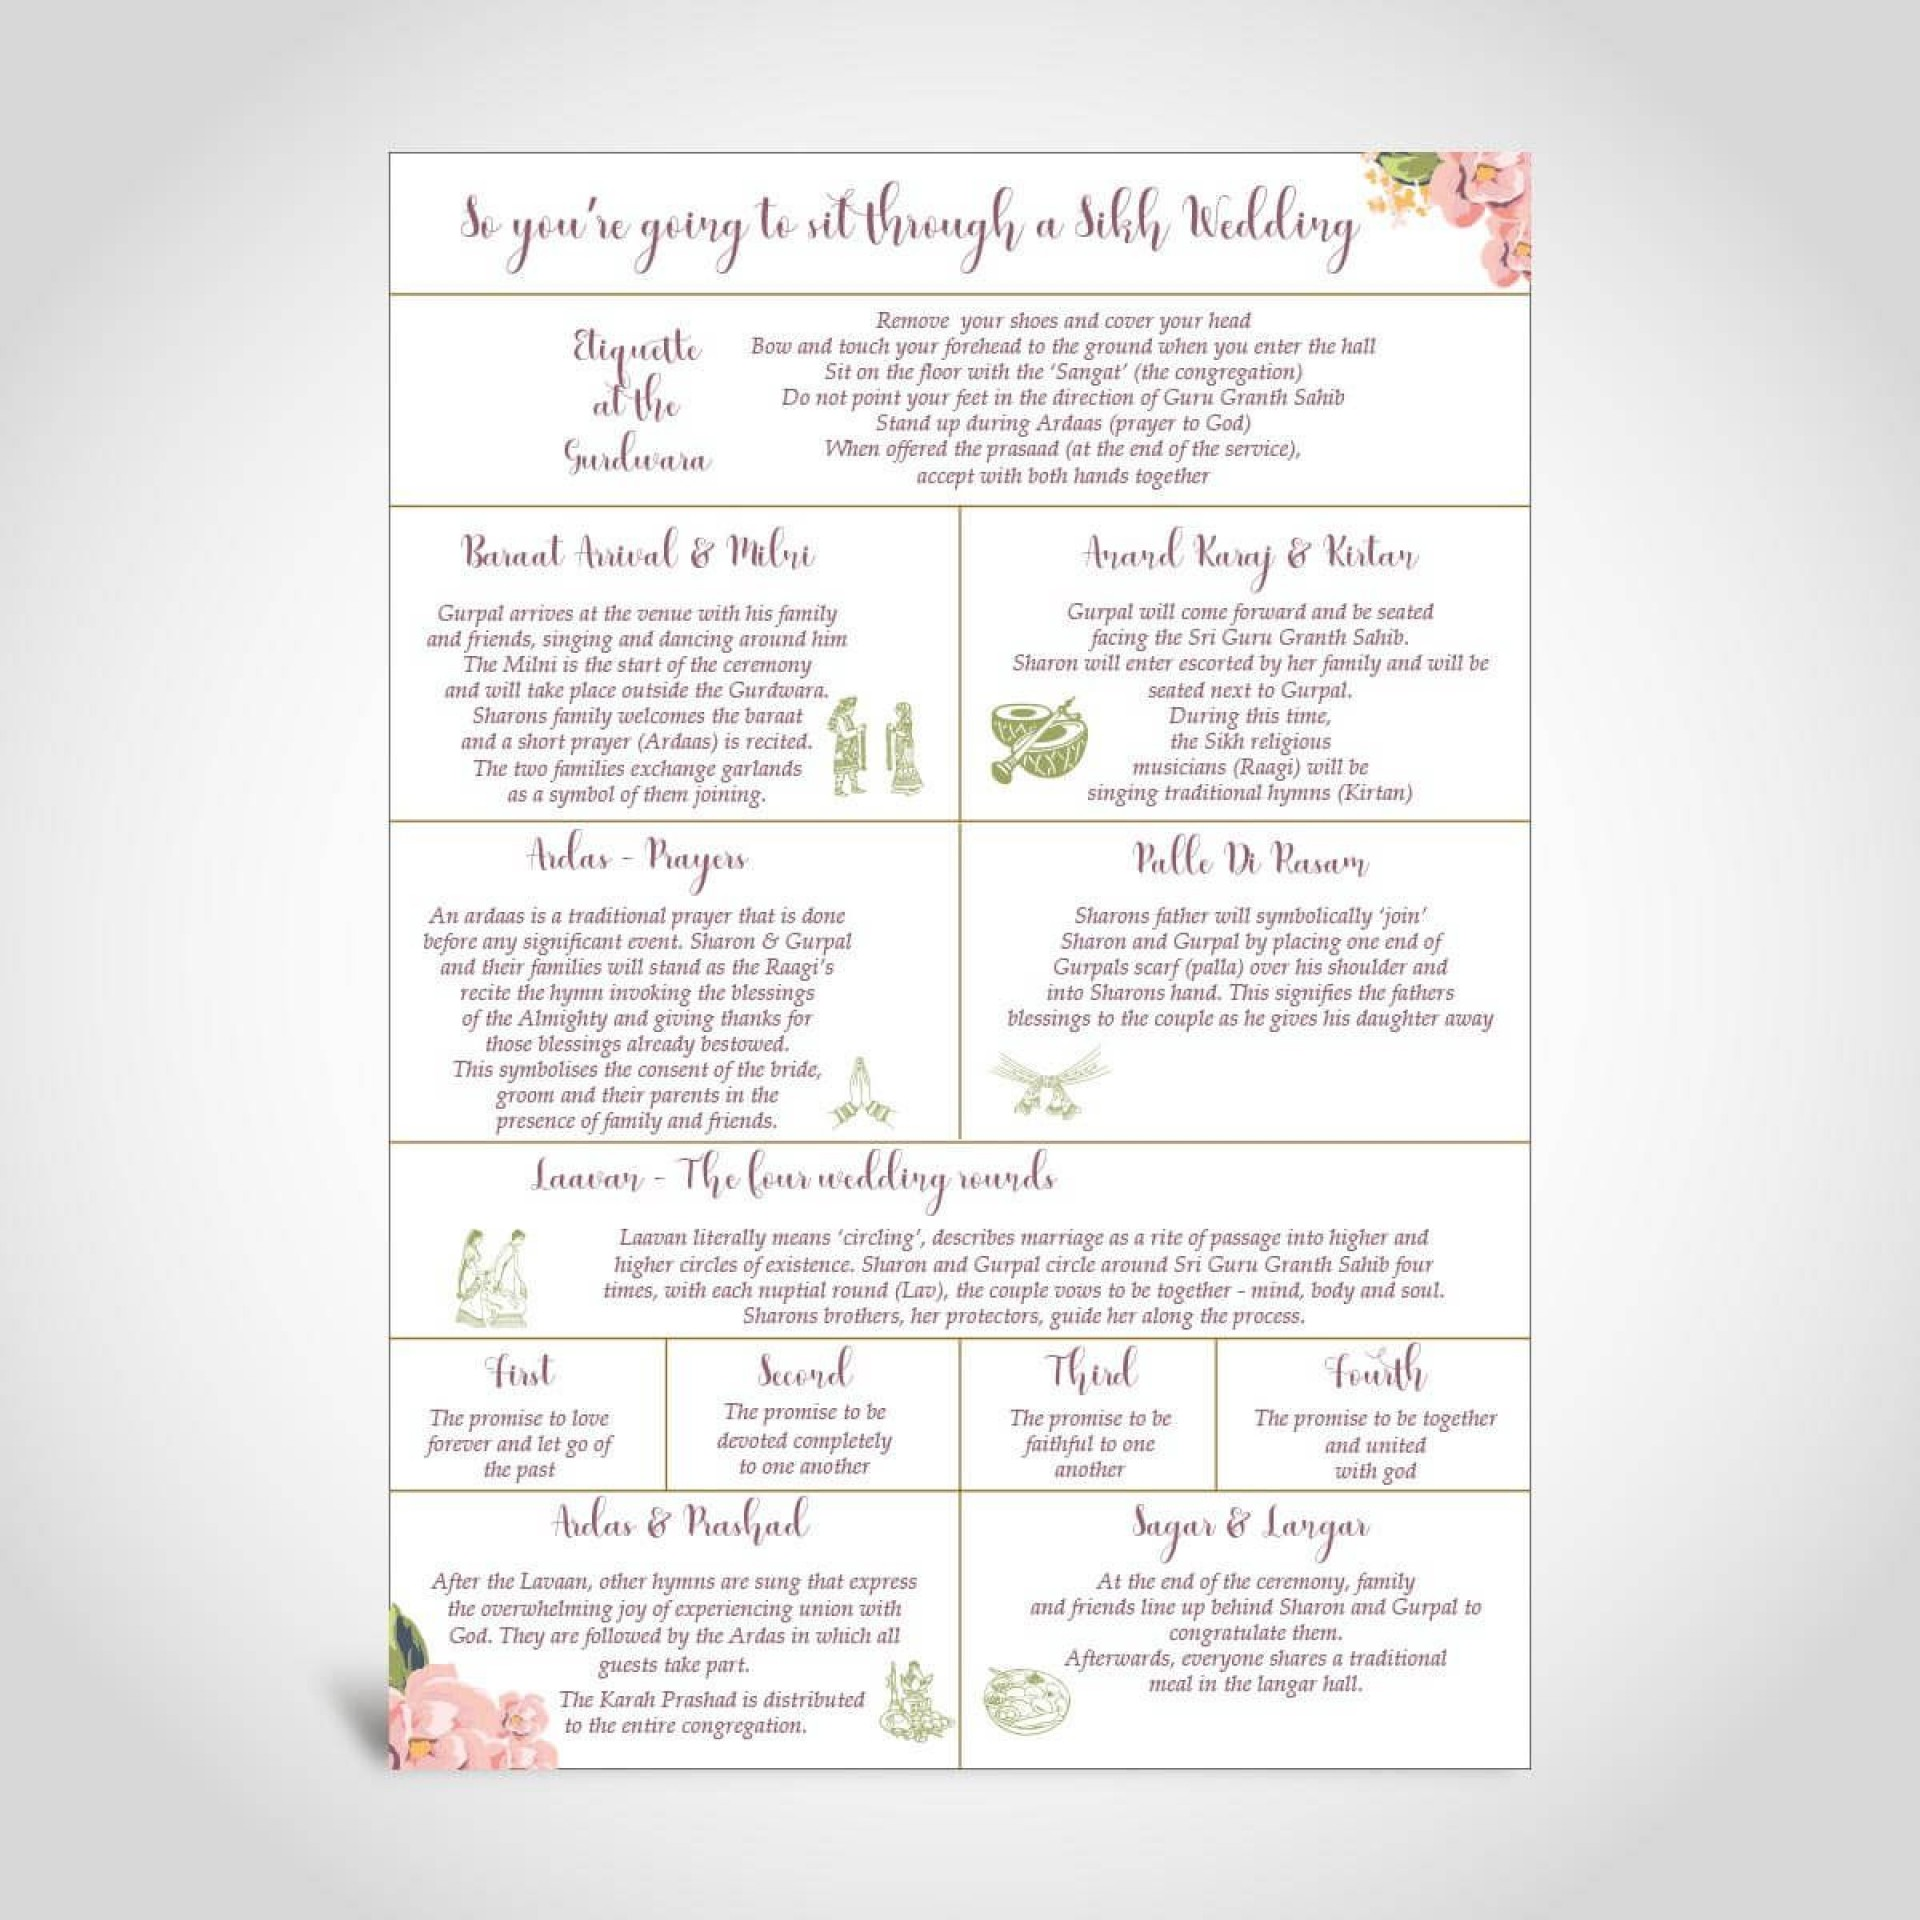 008 Beautiful Traditional Wedding Order Of Service Template Uk High Resolution 1920